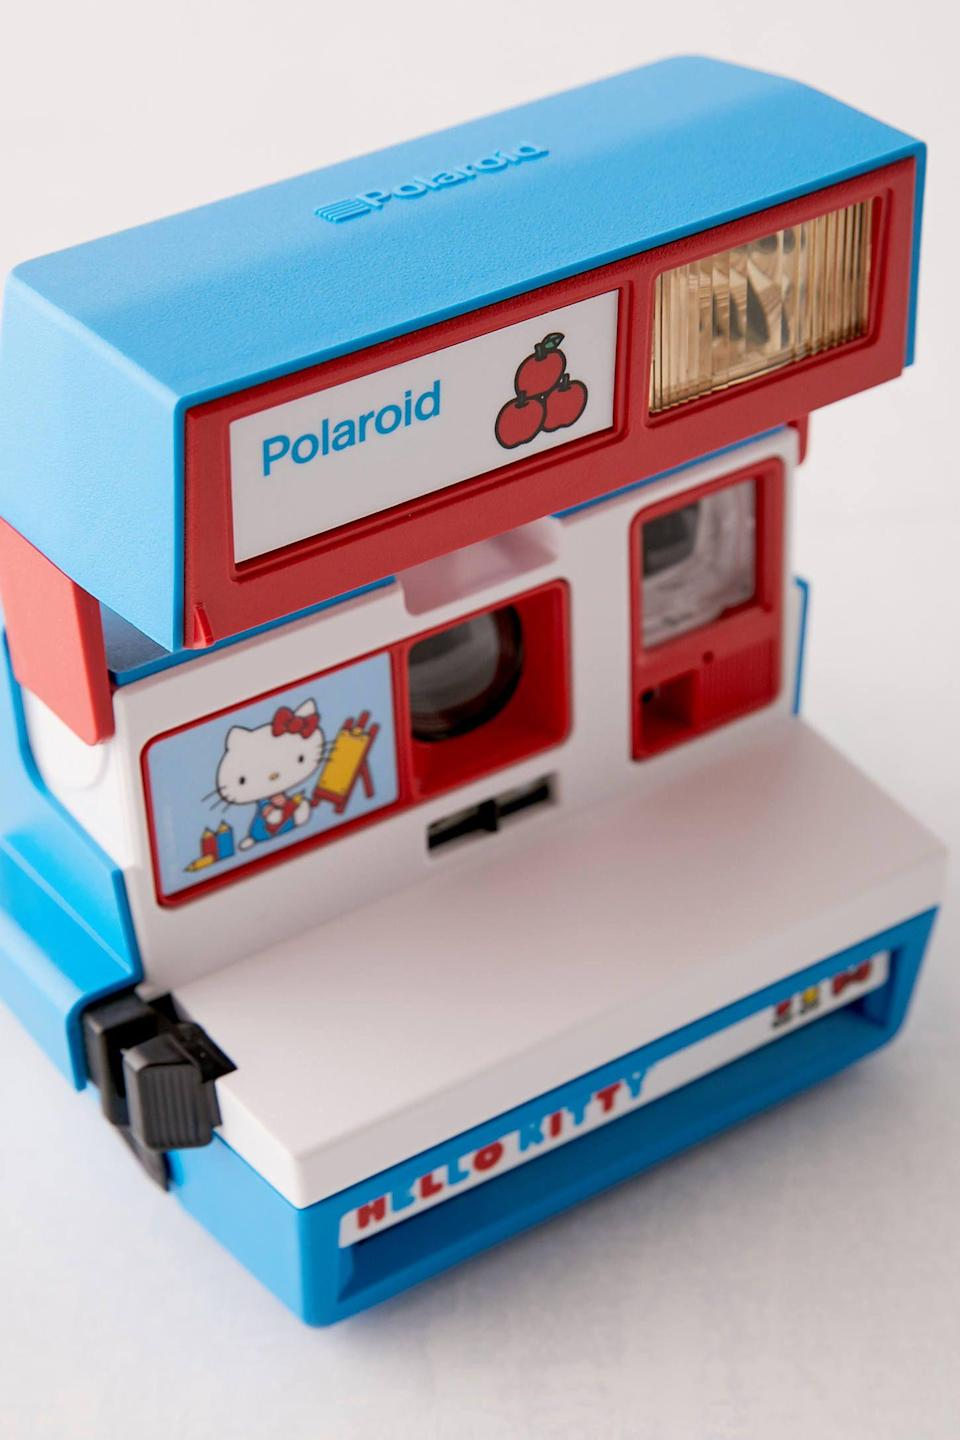 """<p><strong>Polaroid</strong></p><p>urbanoutfitters.com</p><p><strong>$150.00</strong></p><p><a href=""""https://go.redirectingat.com?id=74968X1596630&url=https%3A%2F%2Fwww.urbanoutfitters.com%2Fshop%2Fpolaroid-hello-kitty-600-instant-camera&sref=https%3A%2F%2Fwww.elle.com%2Fbeauty%2Fg34850574%2Fhello-kitty-best-beauty-products%2F"""" rel=""""nofollow noopener"""" target=""""_blank"""" data-ylk=""""slk:Shop Now"""" class=""""link rapid-noclick-resp"""">Shop Now</a></p>"""